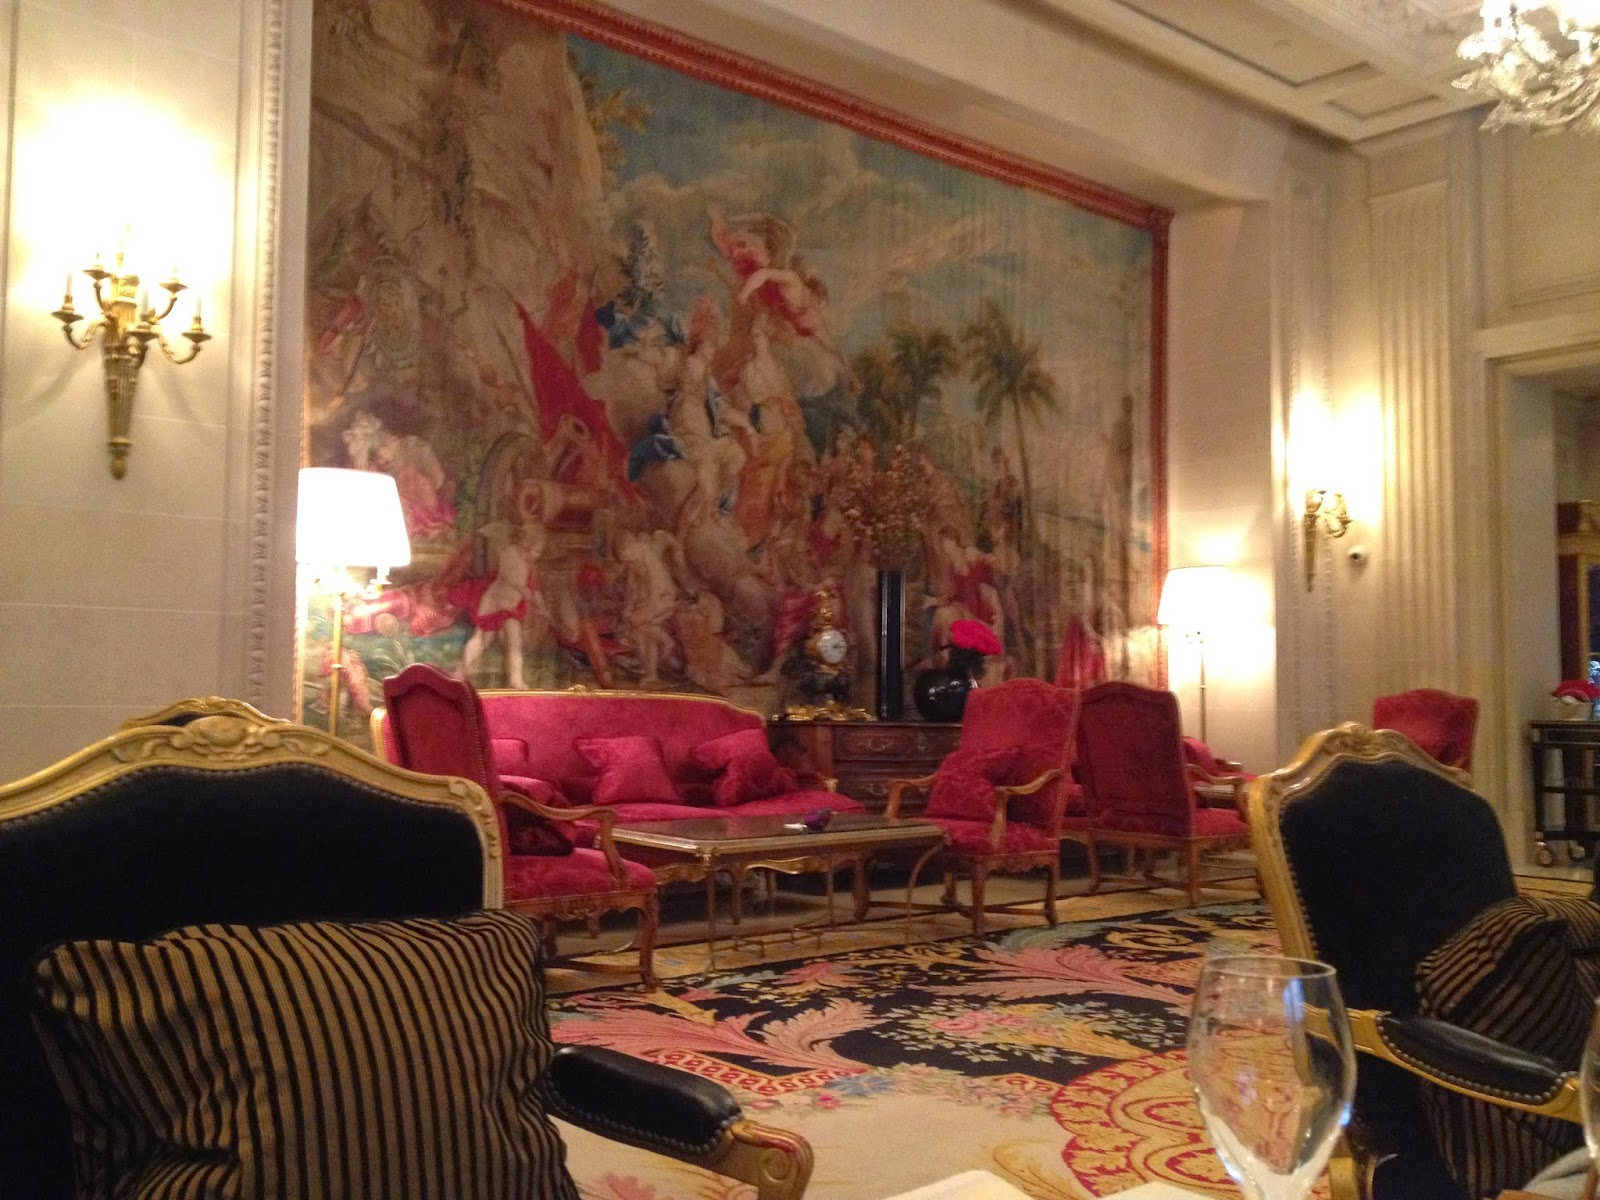 La Galerie, Four Seasons Hotel George V, Paris